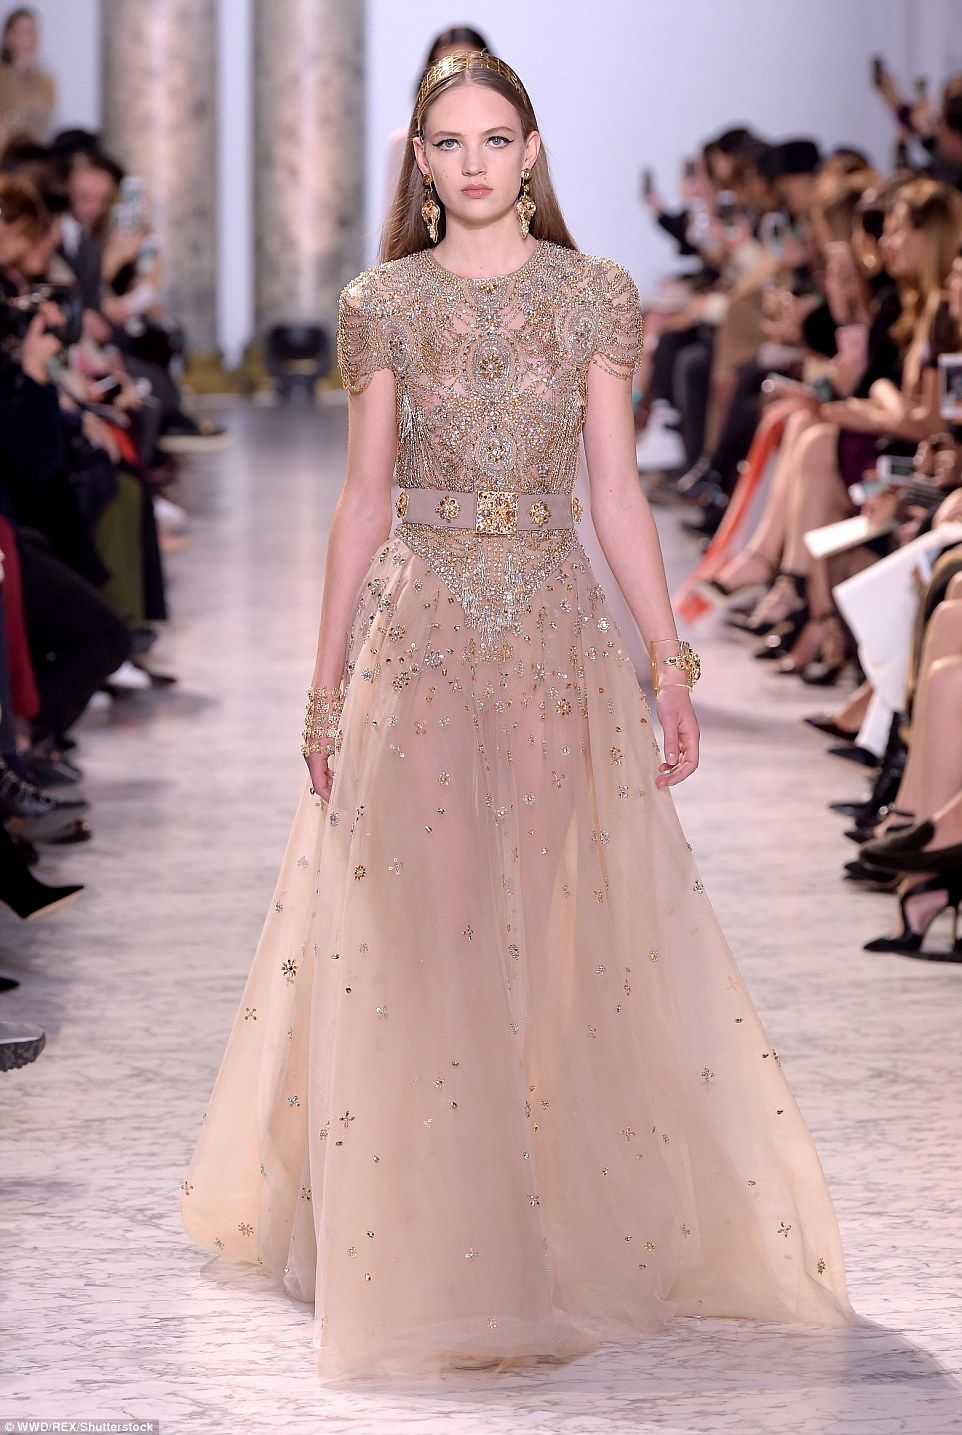 Elie Saab wows with fairytale dresses at Paris Haute Couture show ...